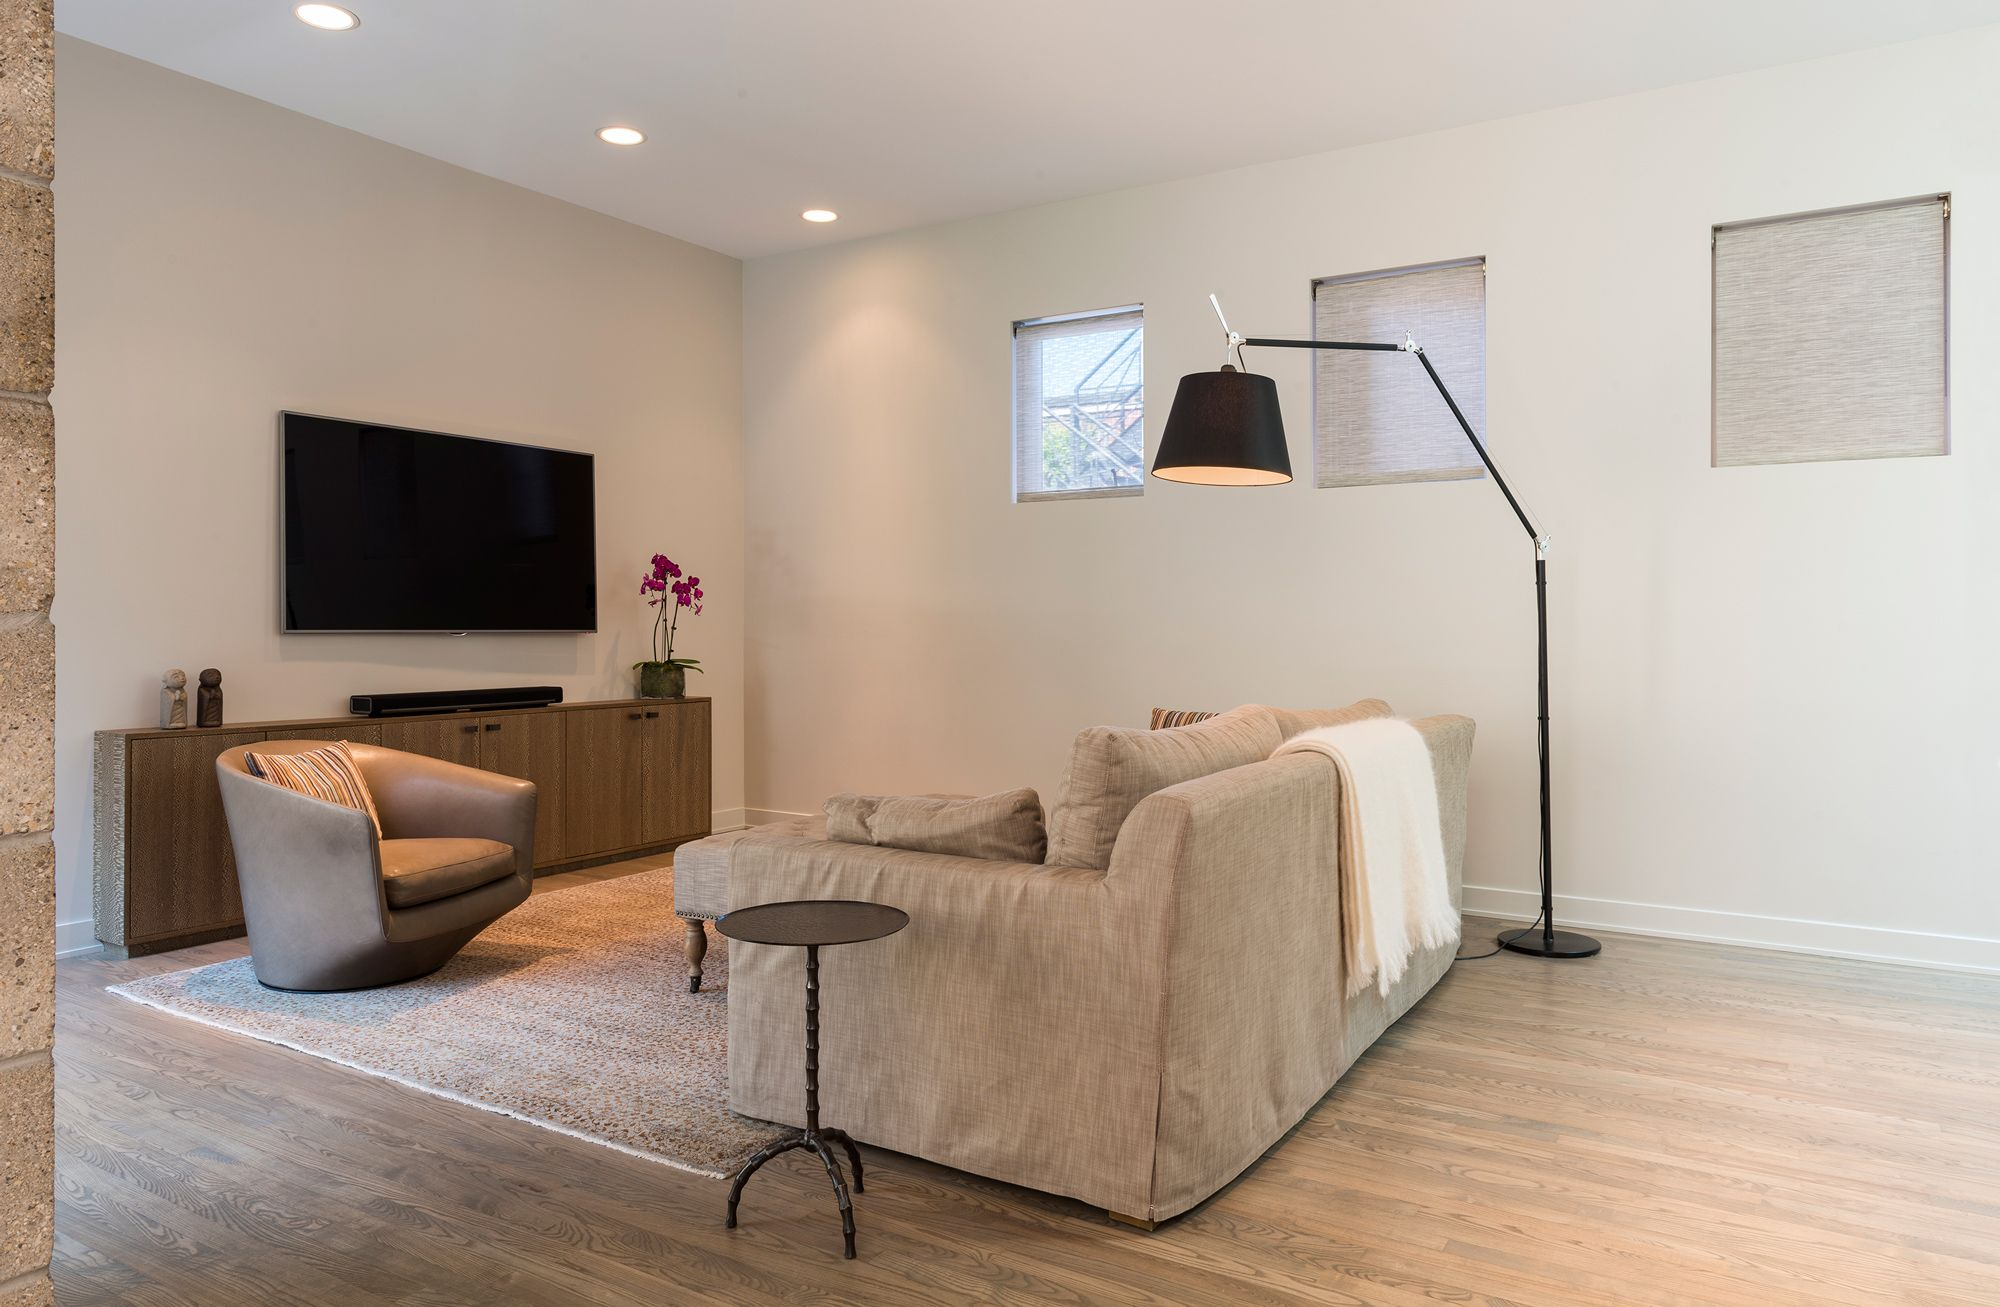 Stylish Lighting for Specific Zones: Floor Lamps Overview. Beige color palette for contemporary styled living room with fireplace and large LED TV